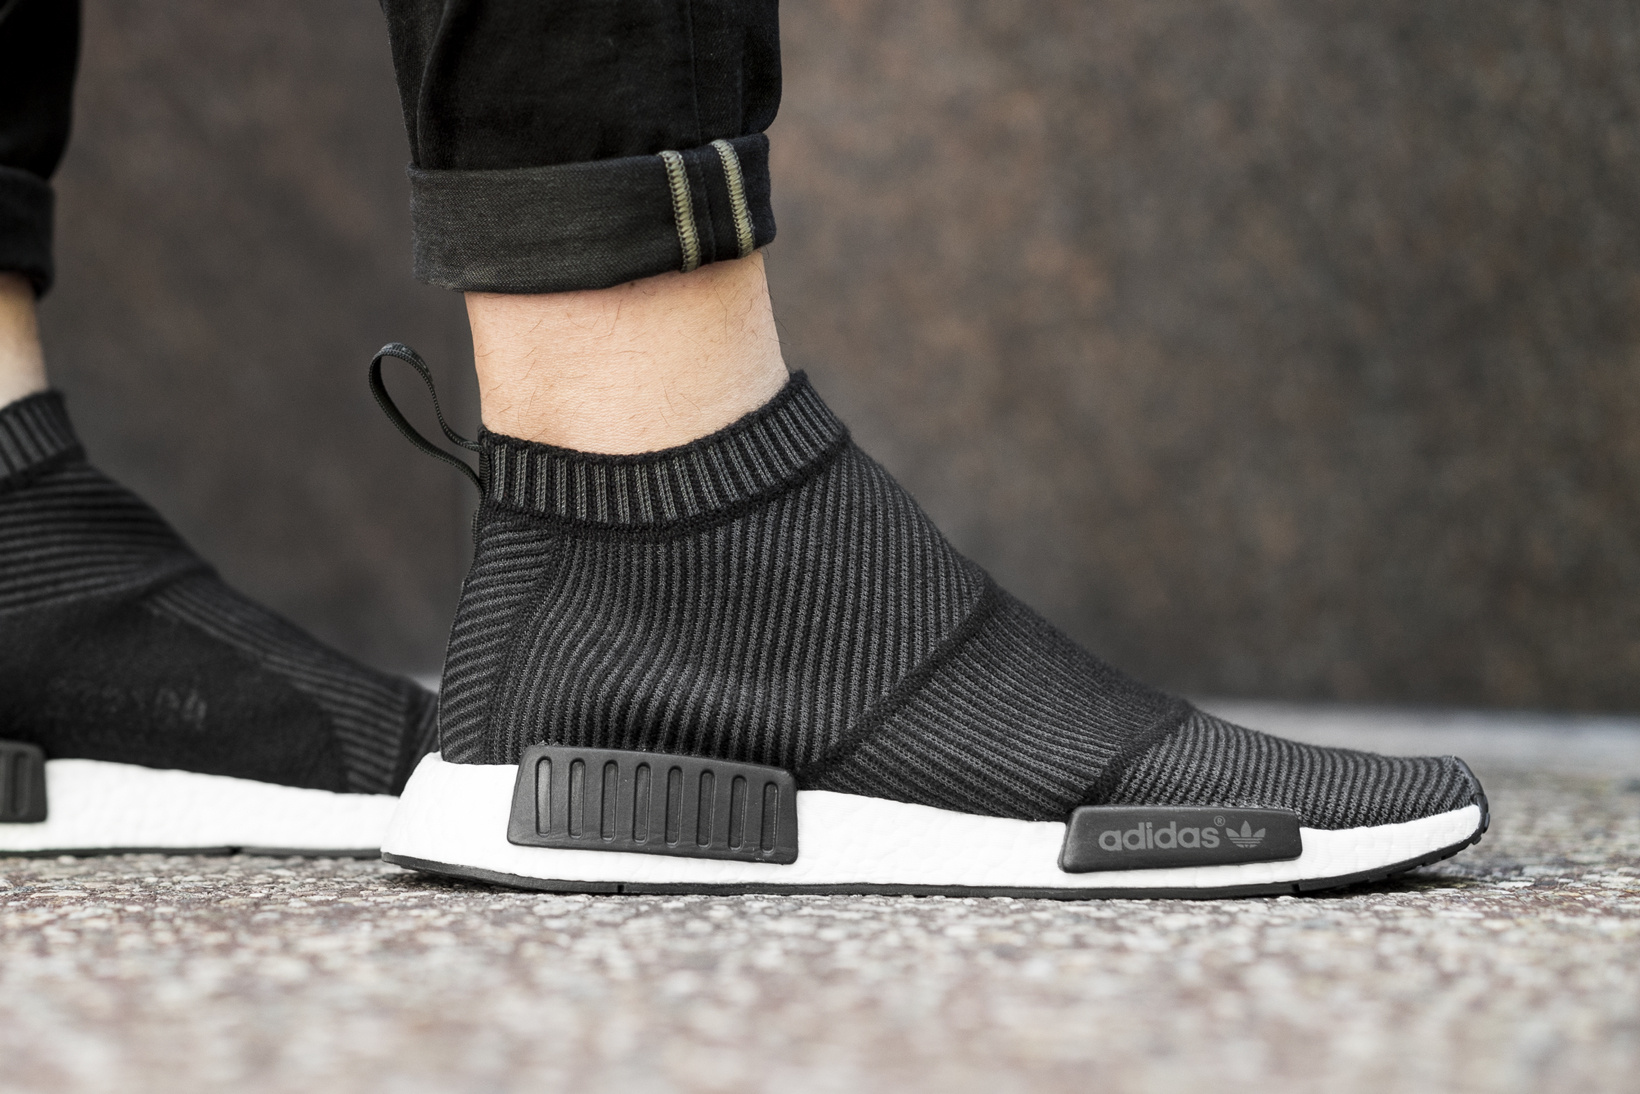 adidas nmd city sock,adidas nmd city sock gum